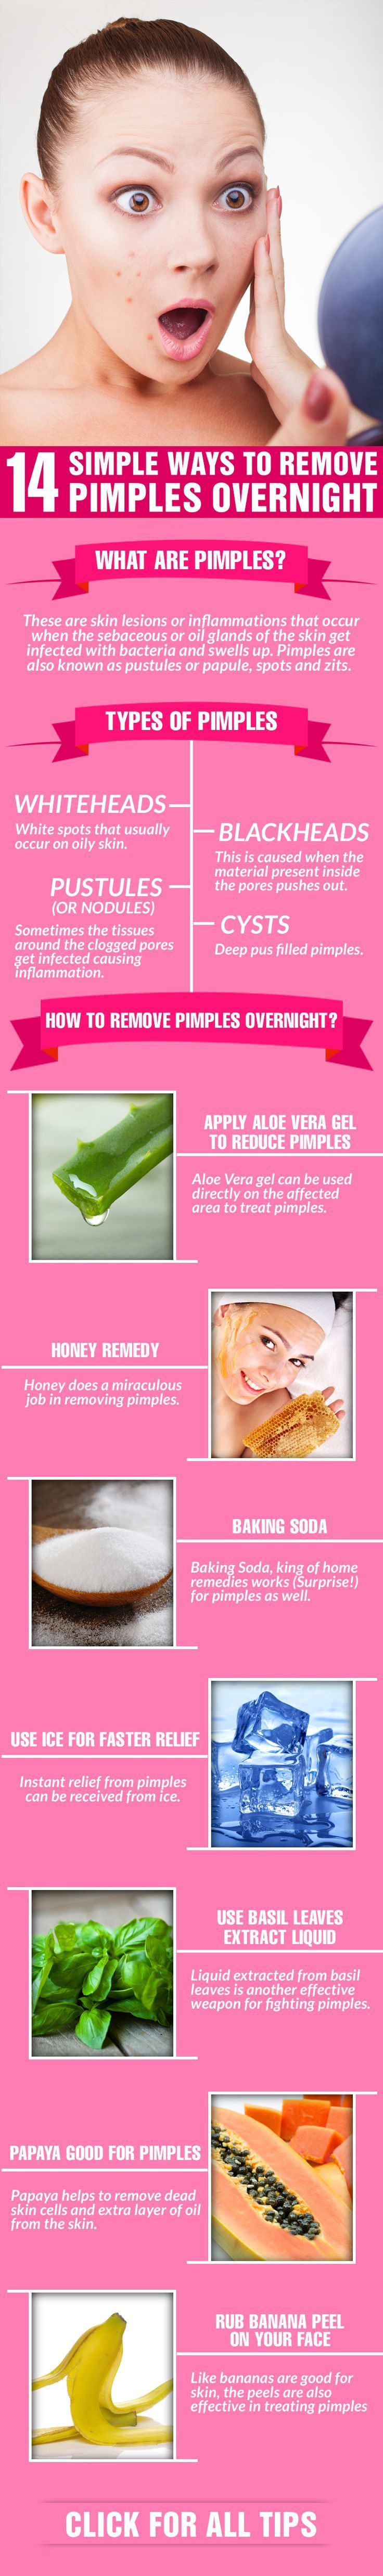 Home Remedies for Acne: 10 Easy Ones That Work